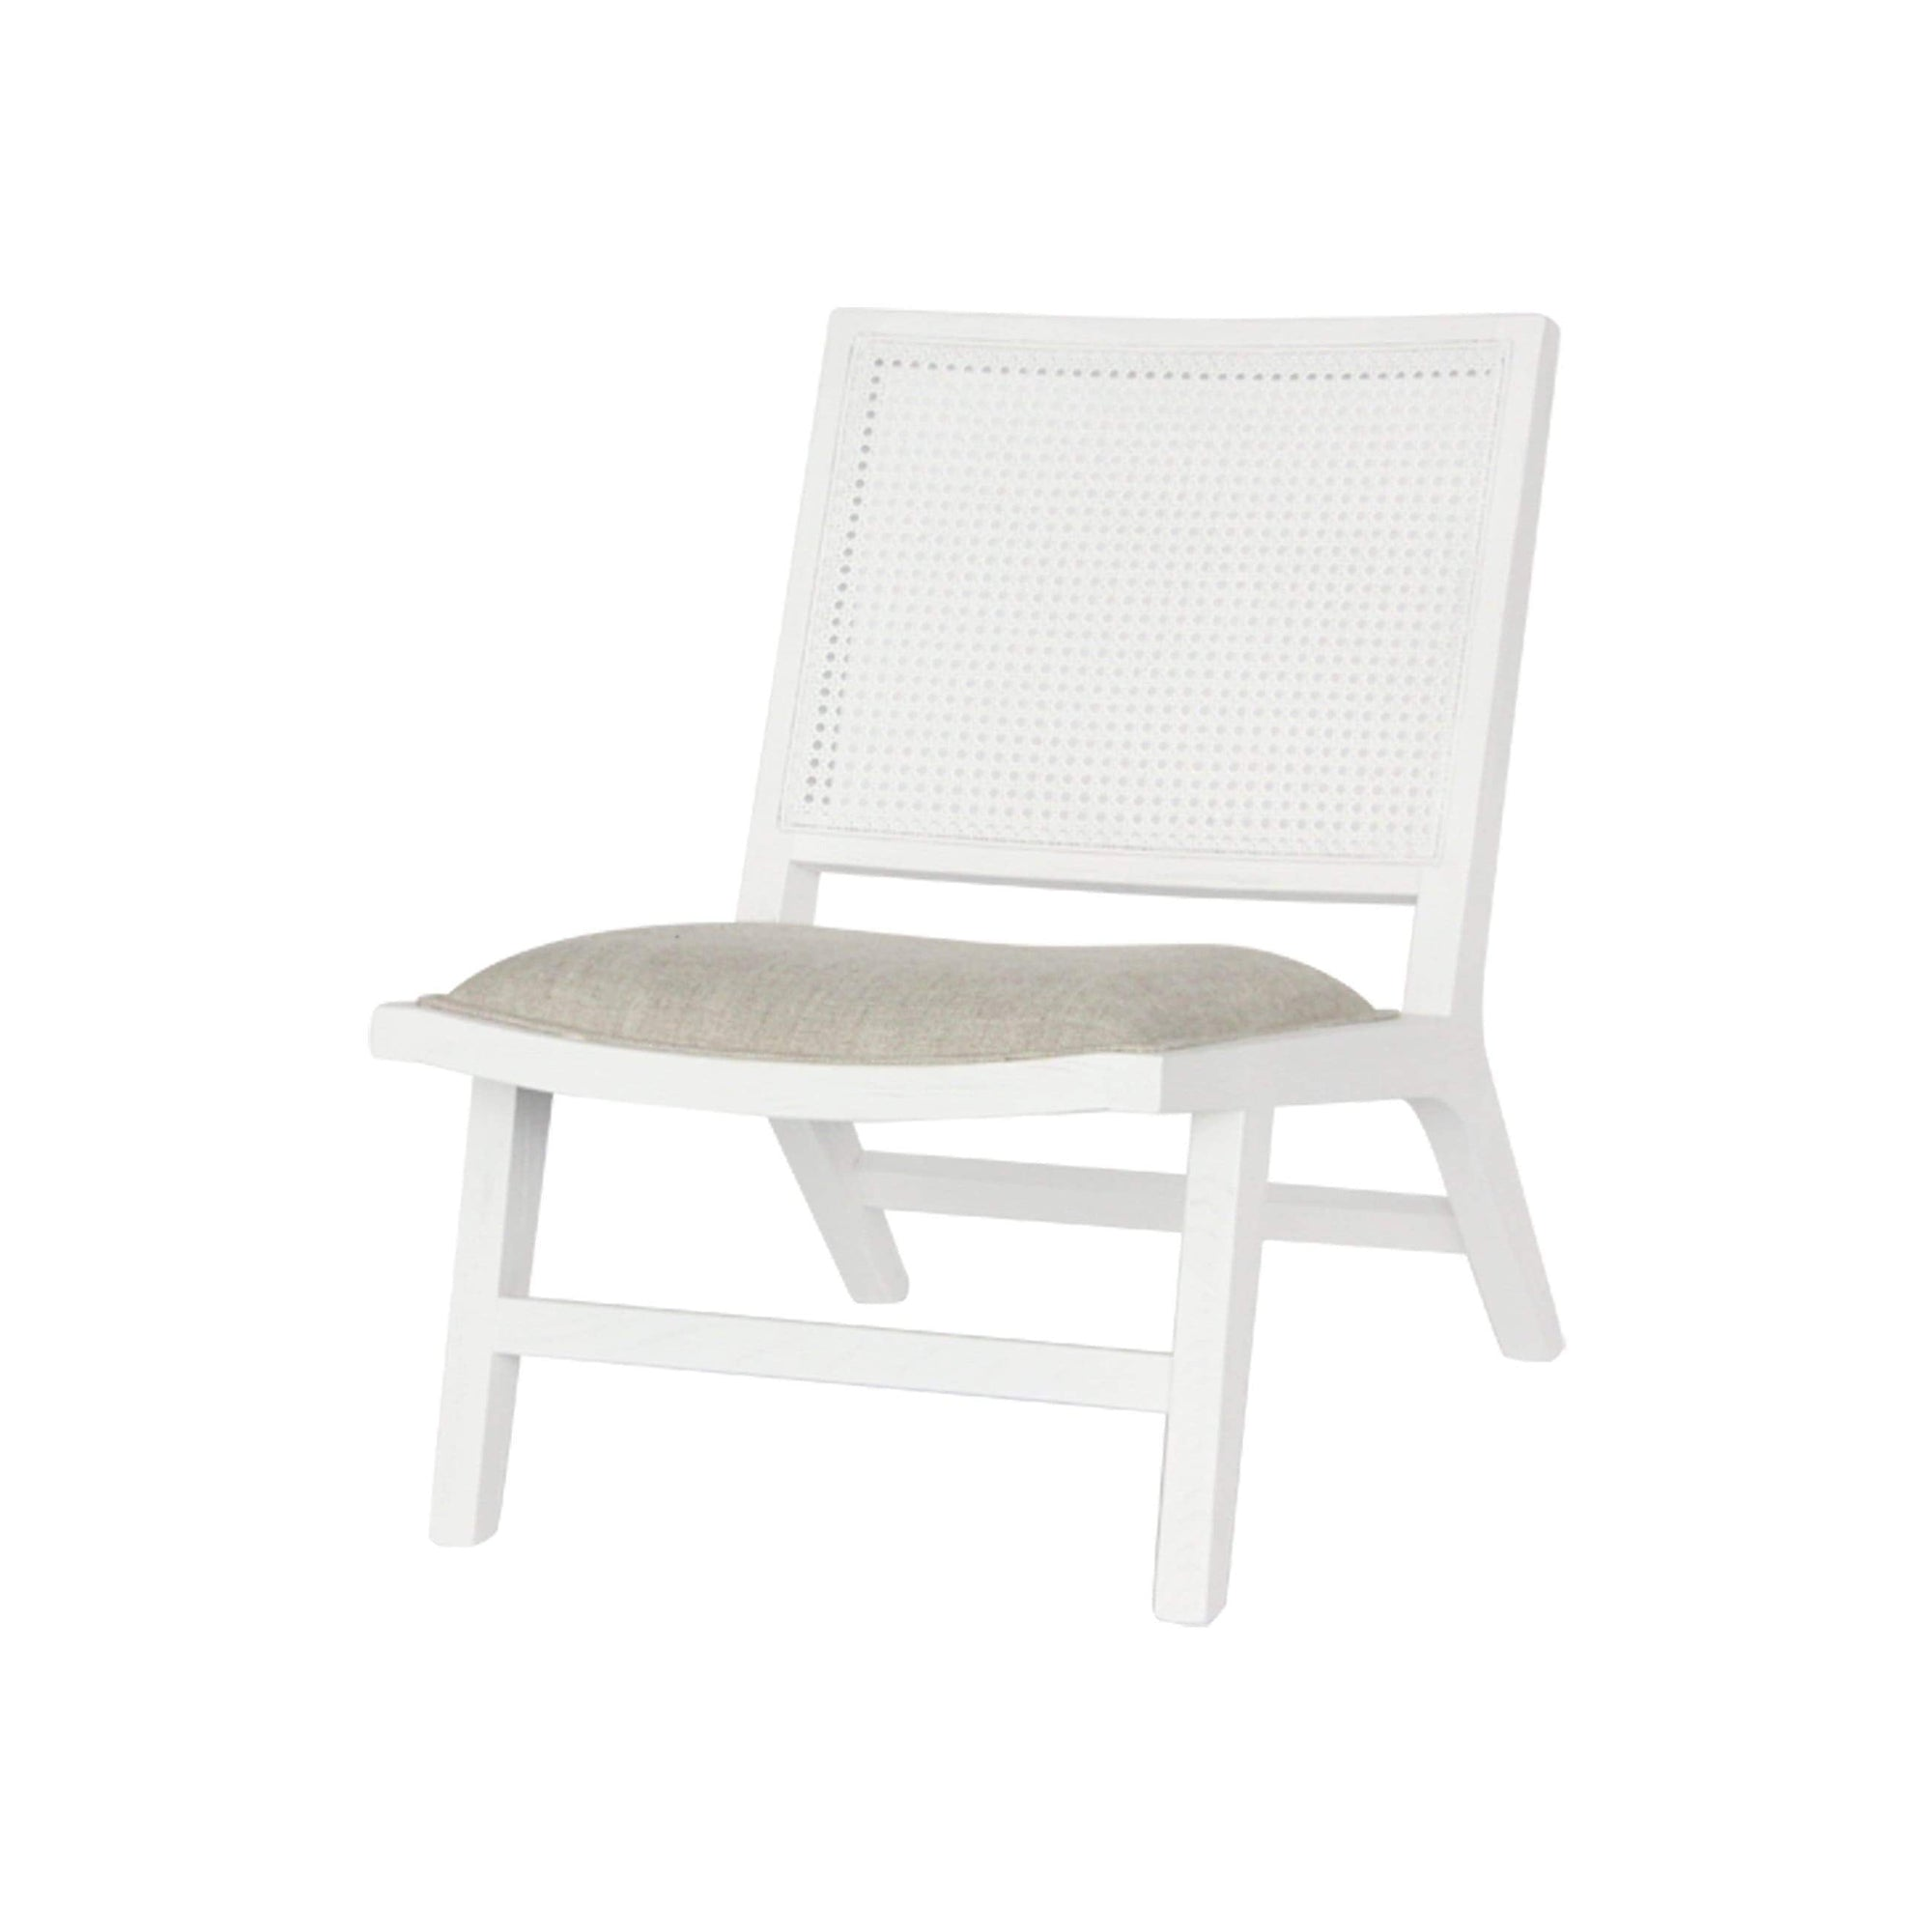 Palmer Rattan Occasional Chair white | Luxury Furniture Sydney